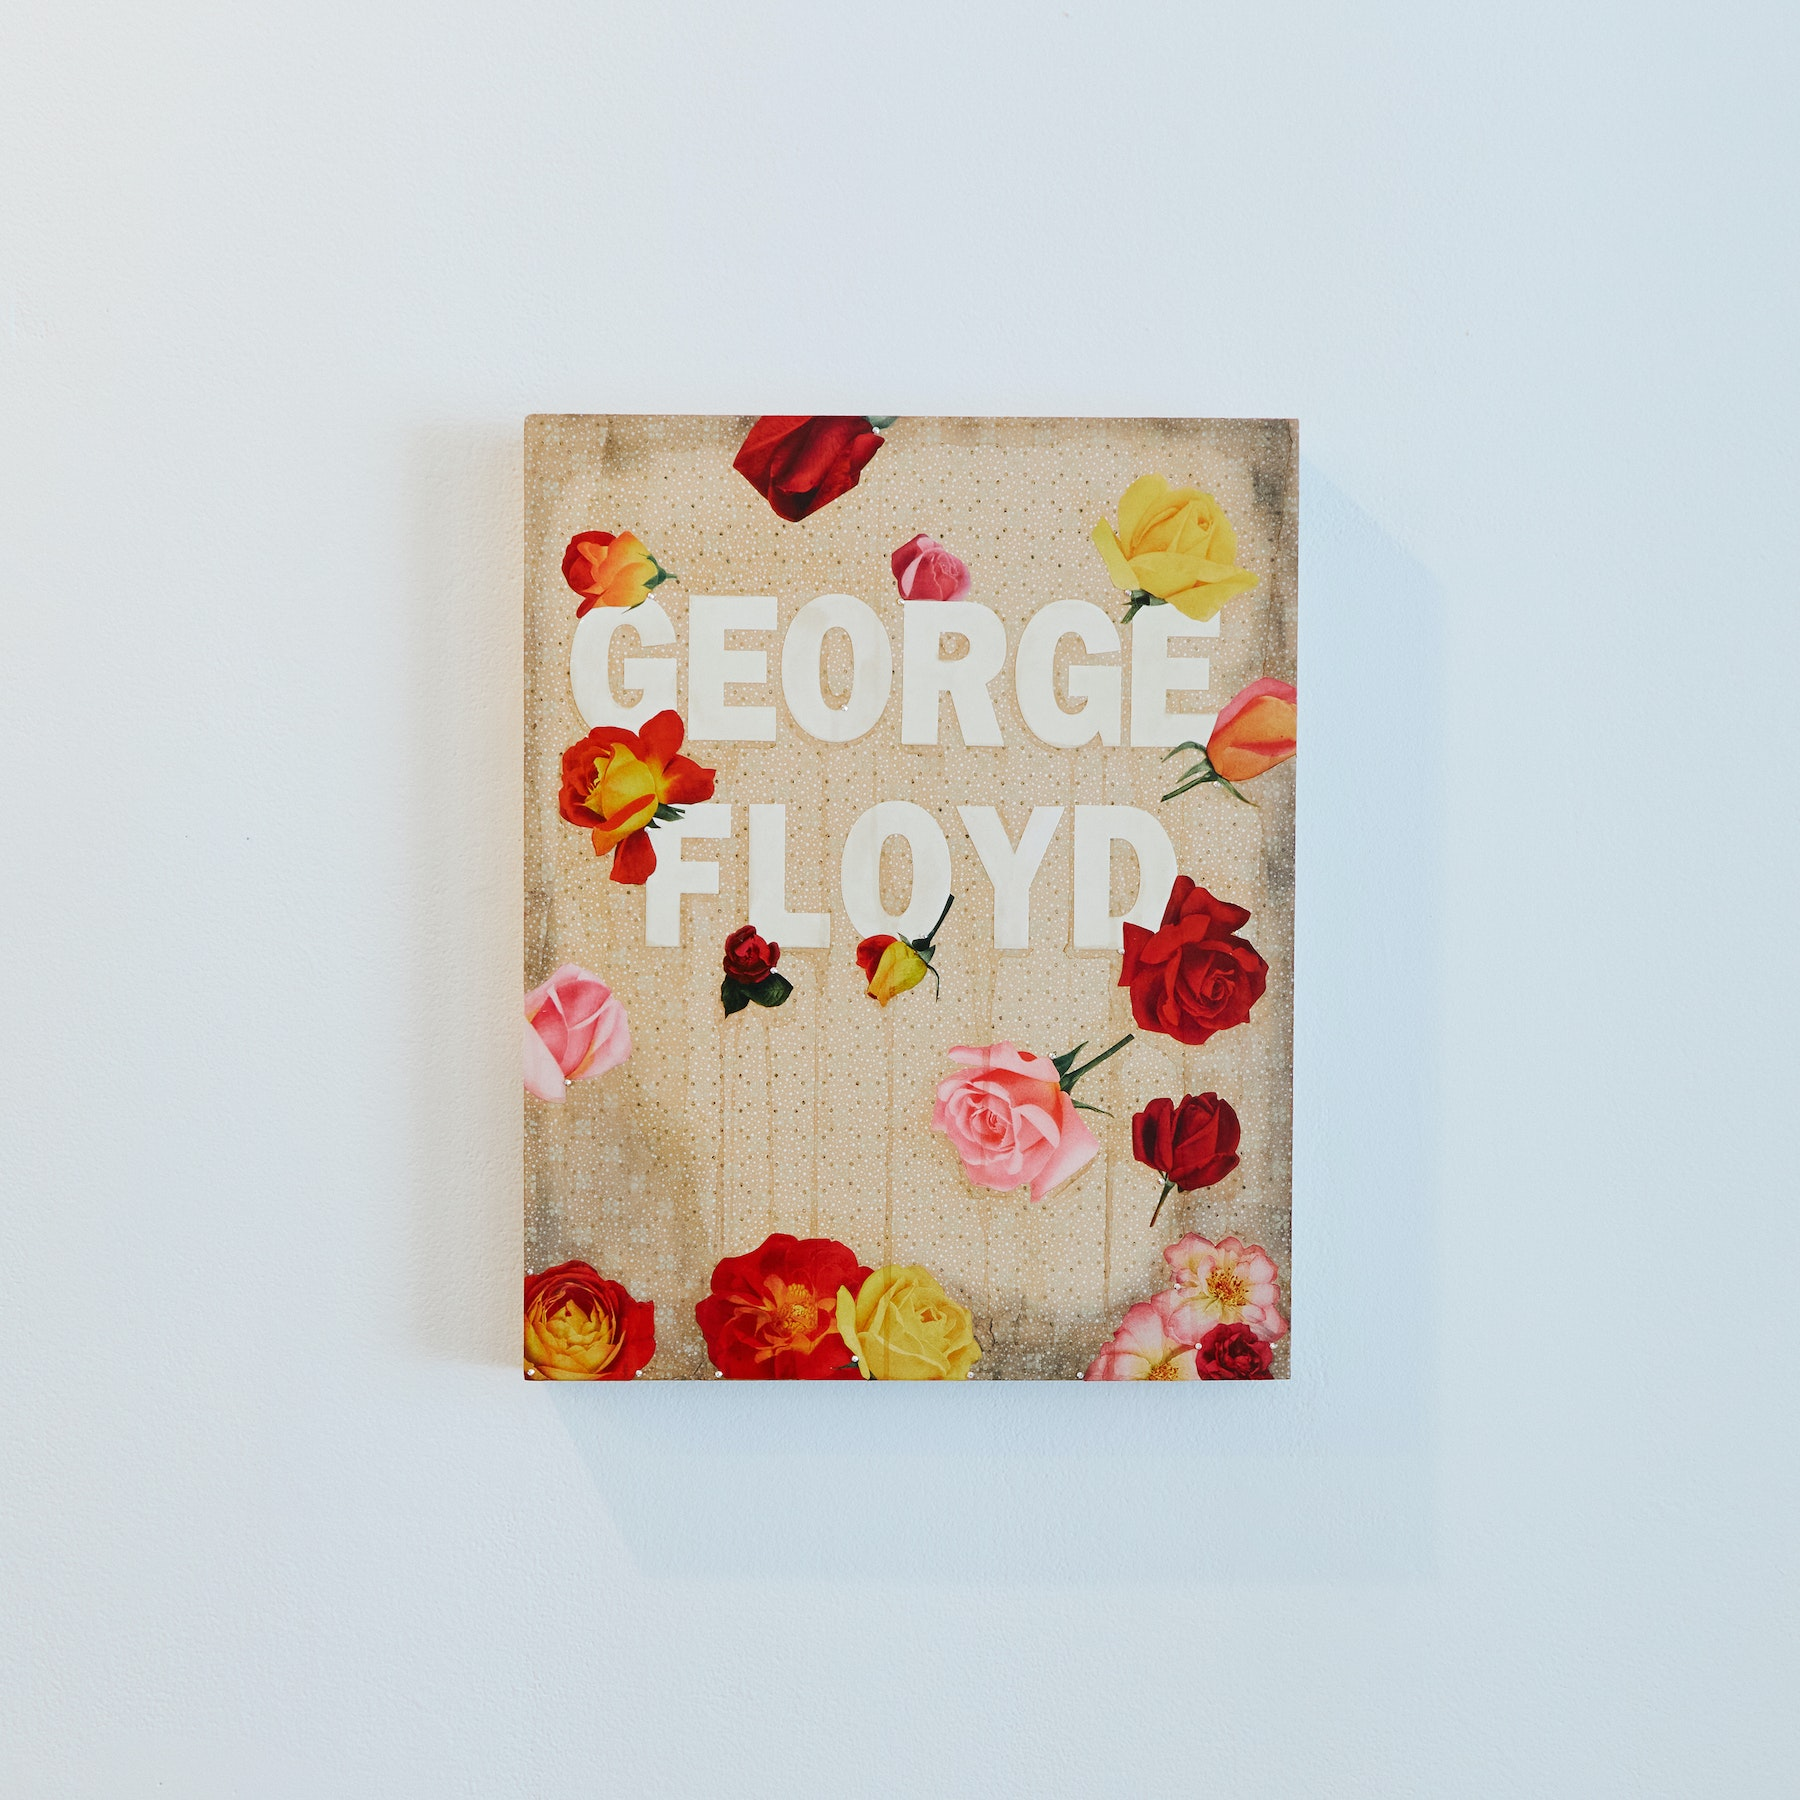 "Genevieve Gaignard ""Untitled (George Floyd),"" 2020 Mixed media on panel 20 x 16 x 1.5"" [HxWxD] (50.8 x 40.64 x 3.81 cm) Inventory #GEN323 Courtesy of the artist and Vielmetter Los Angeles Photo credit: Megan Haley"